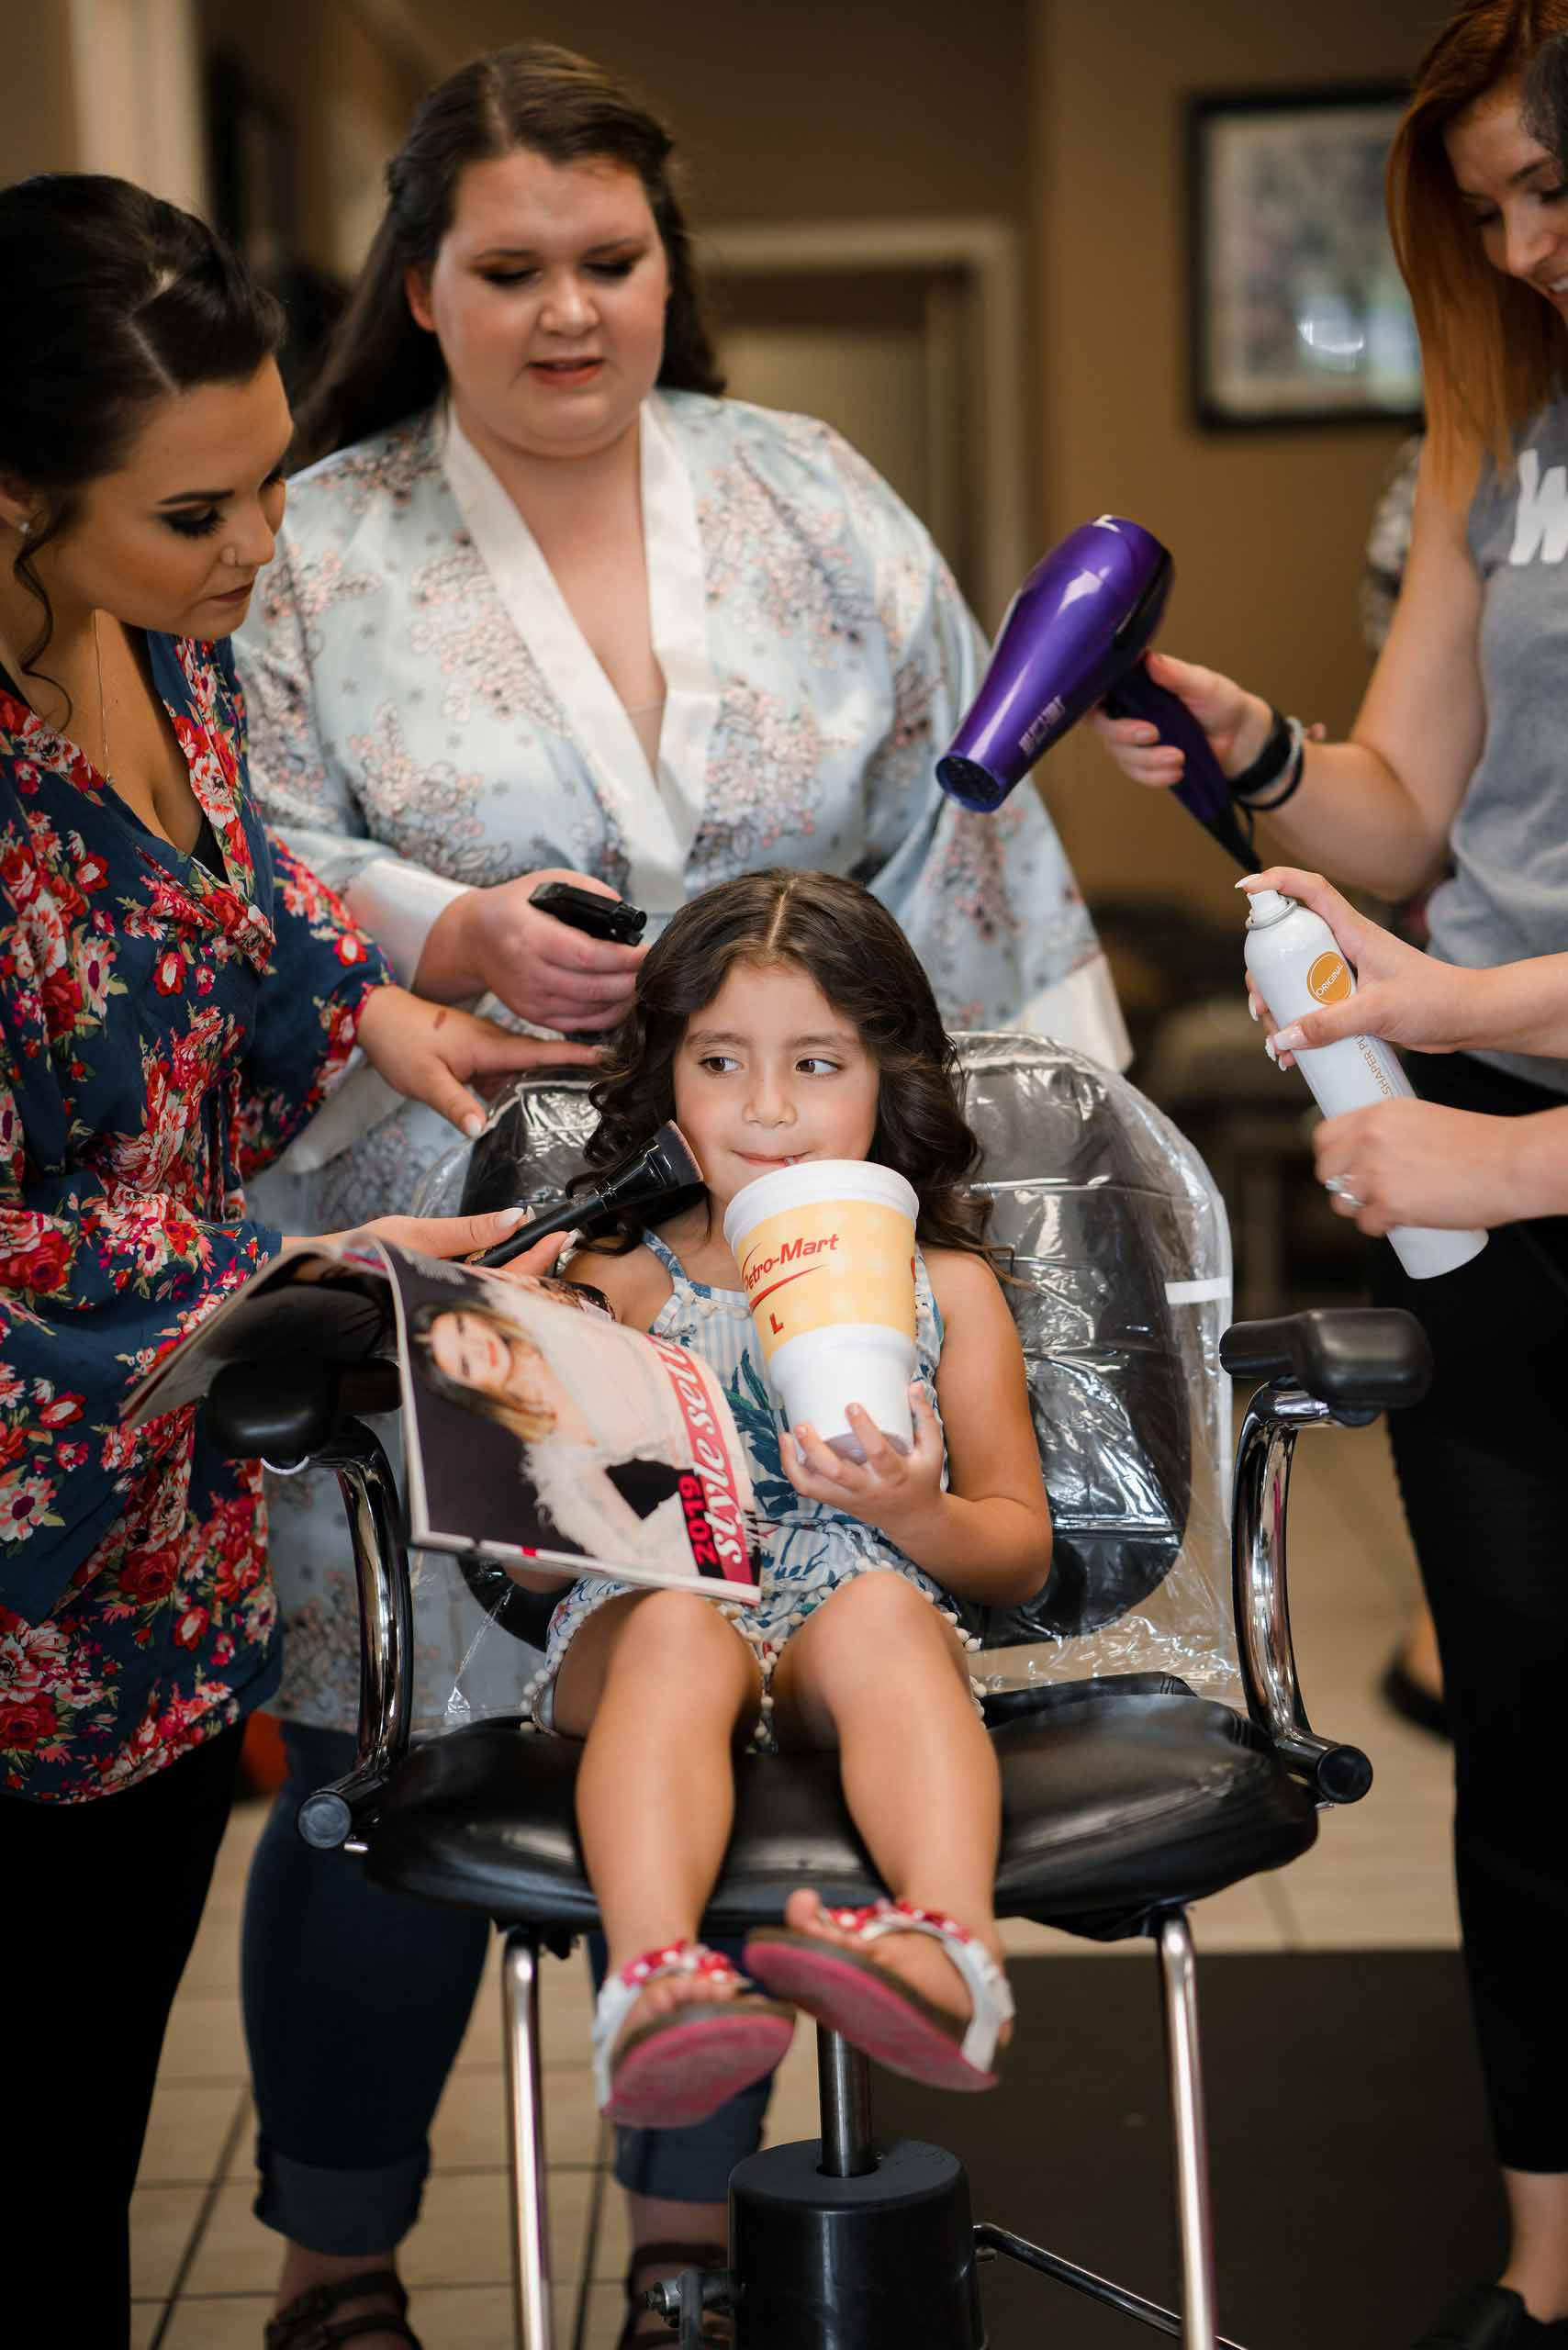 Young child sat in a chair, as the bridesmaids is doing her hair